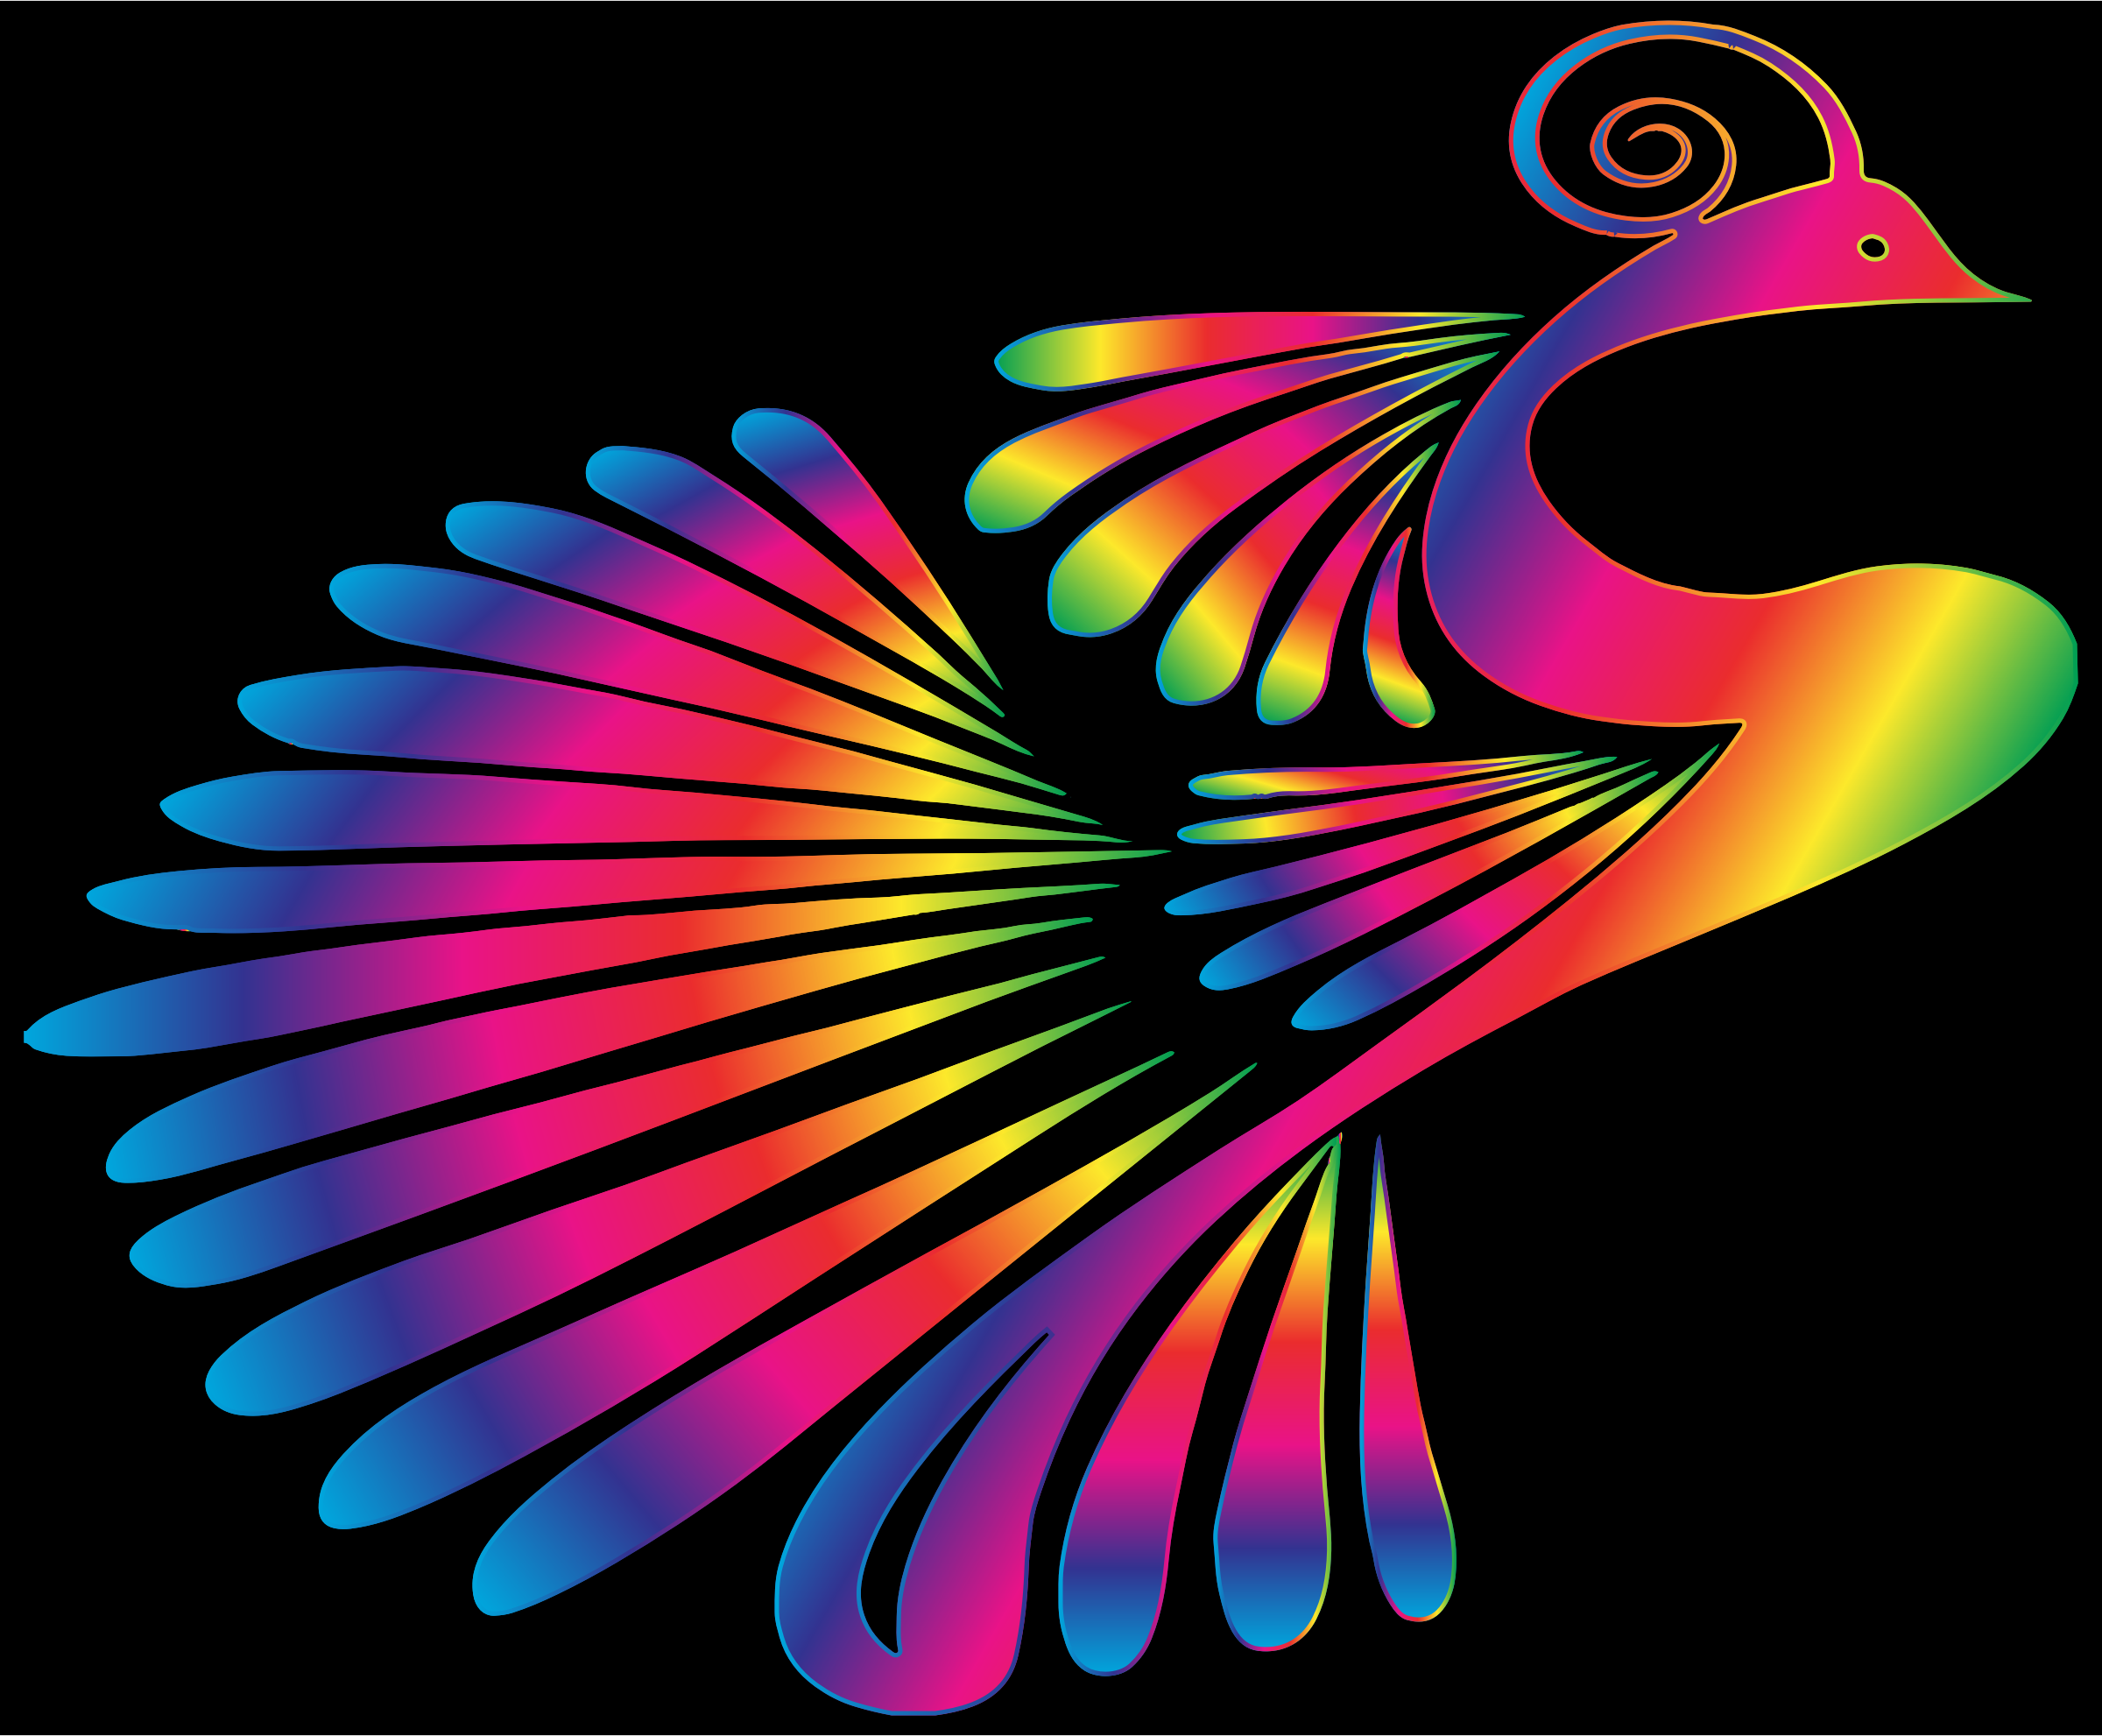 Colorful Stylized Peacock 16 by GDJ